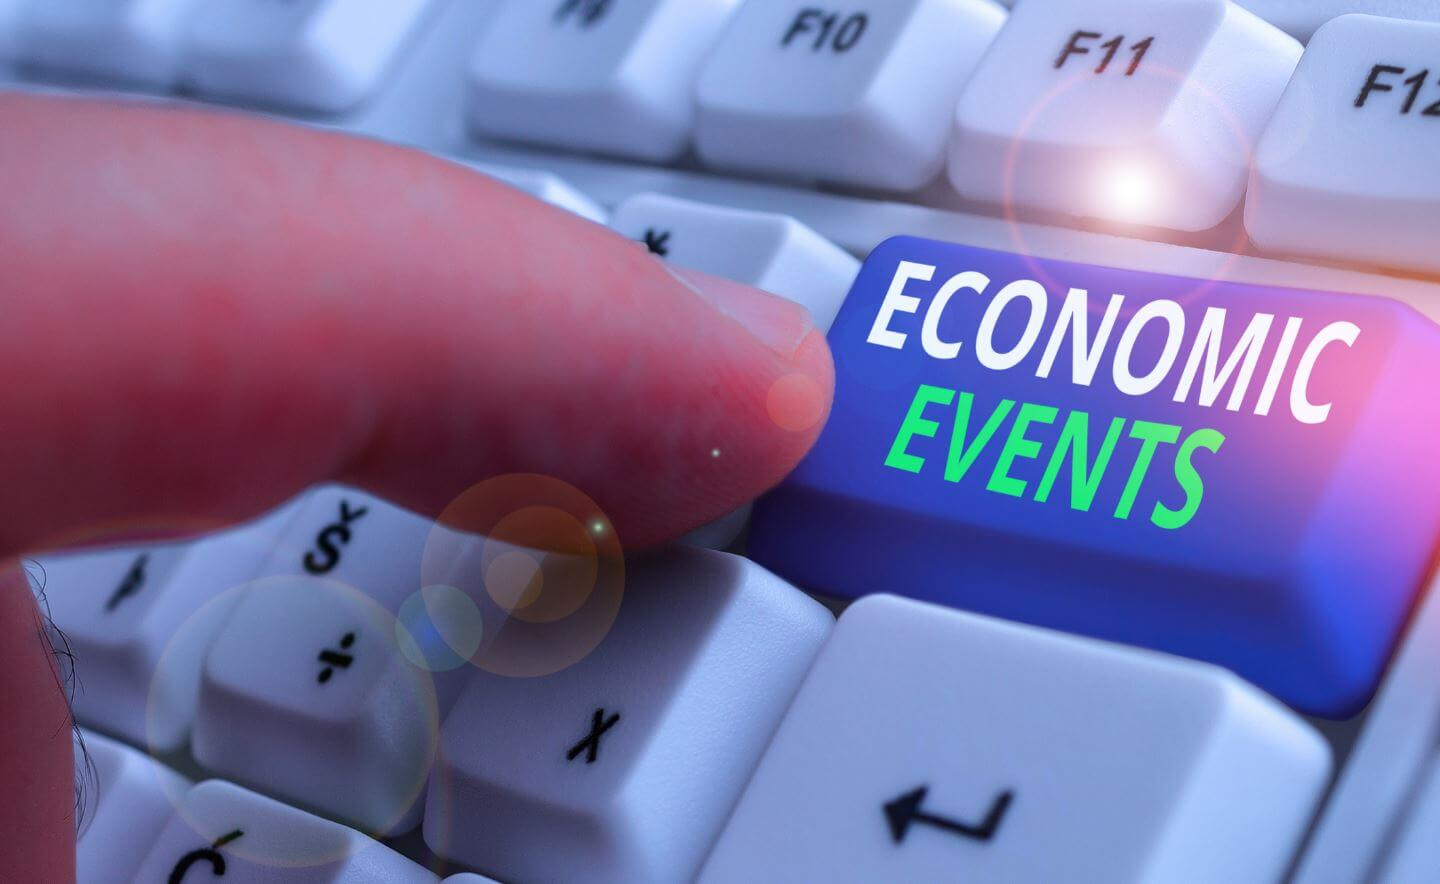 economic events shortcut button in keyboard